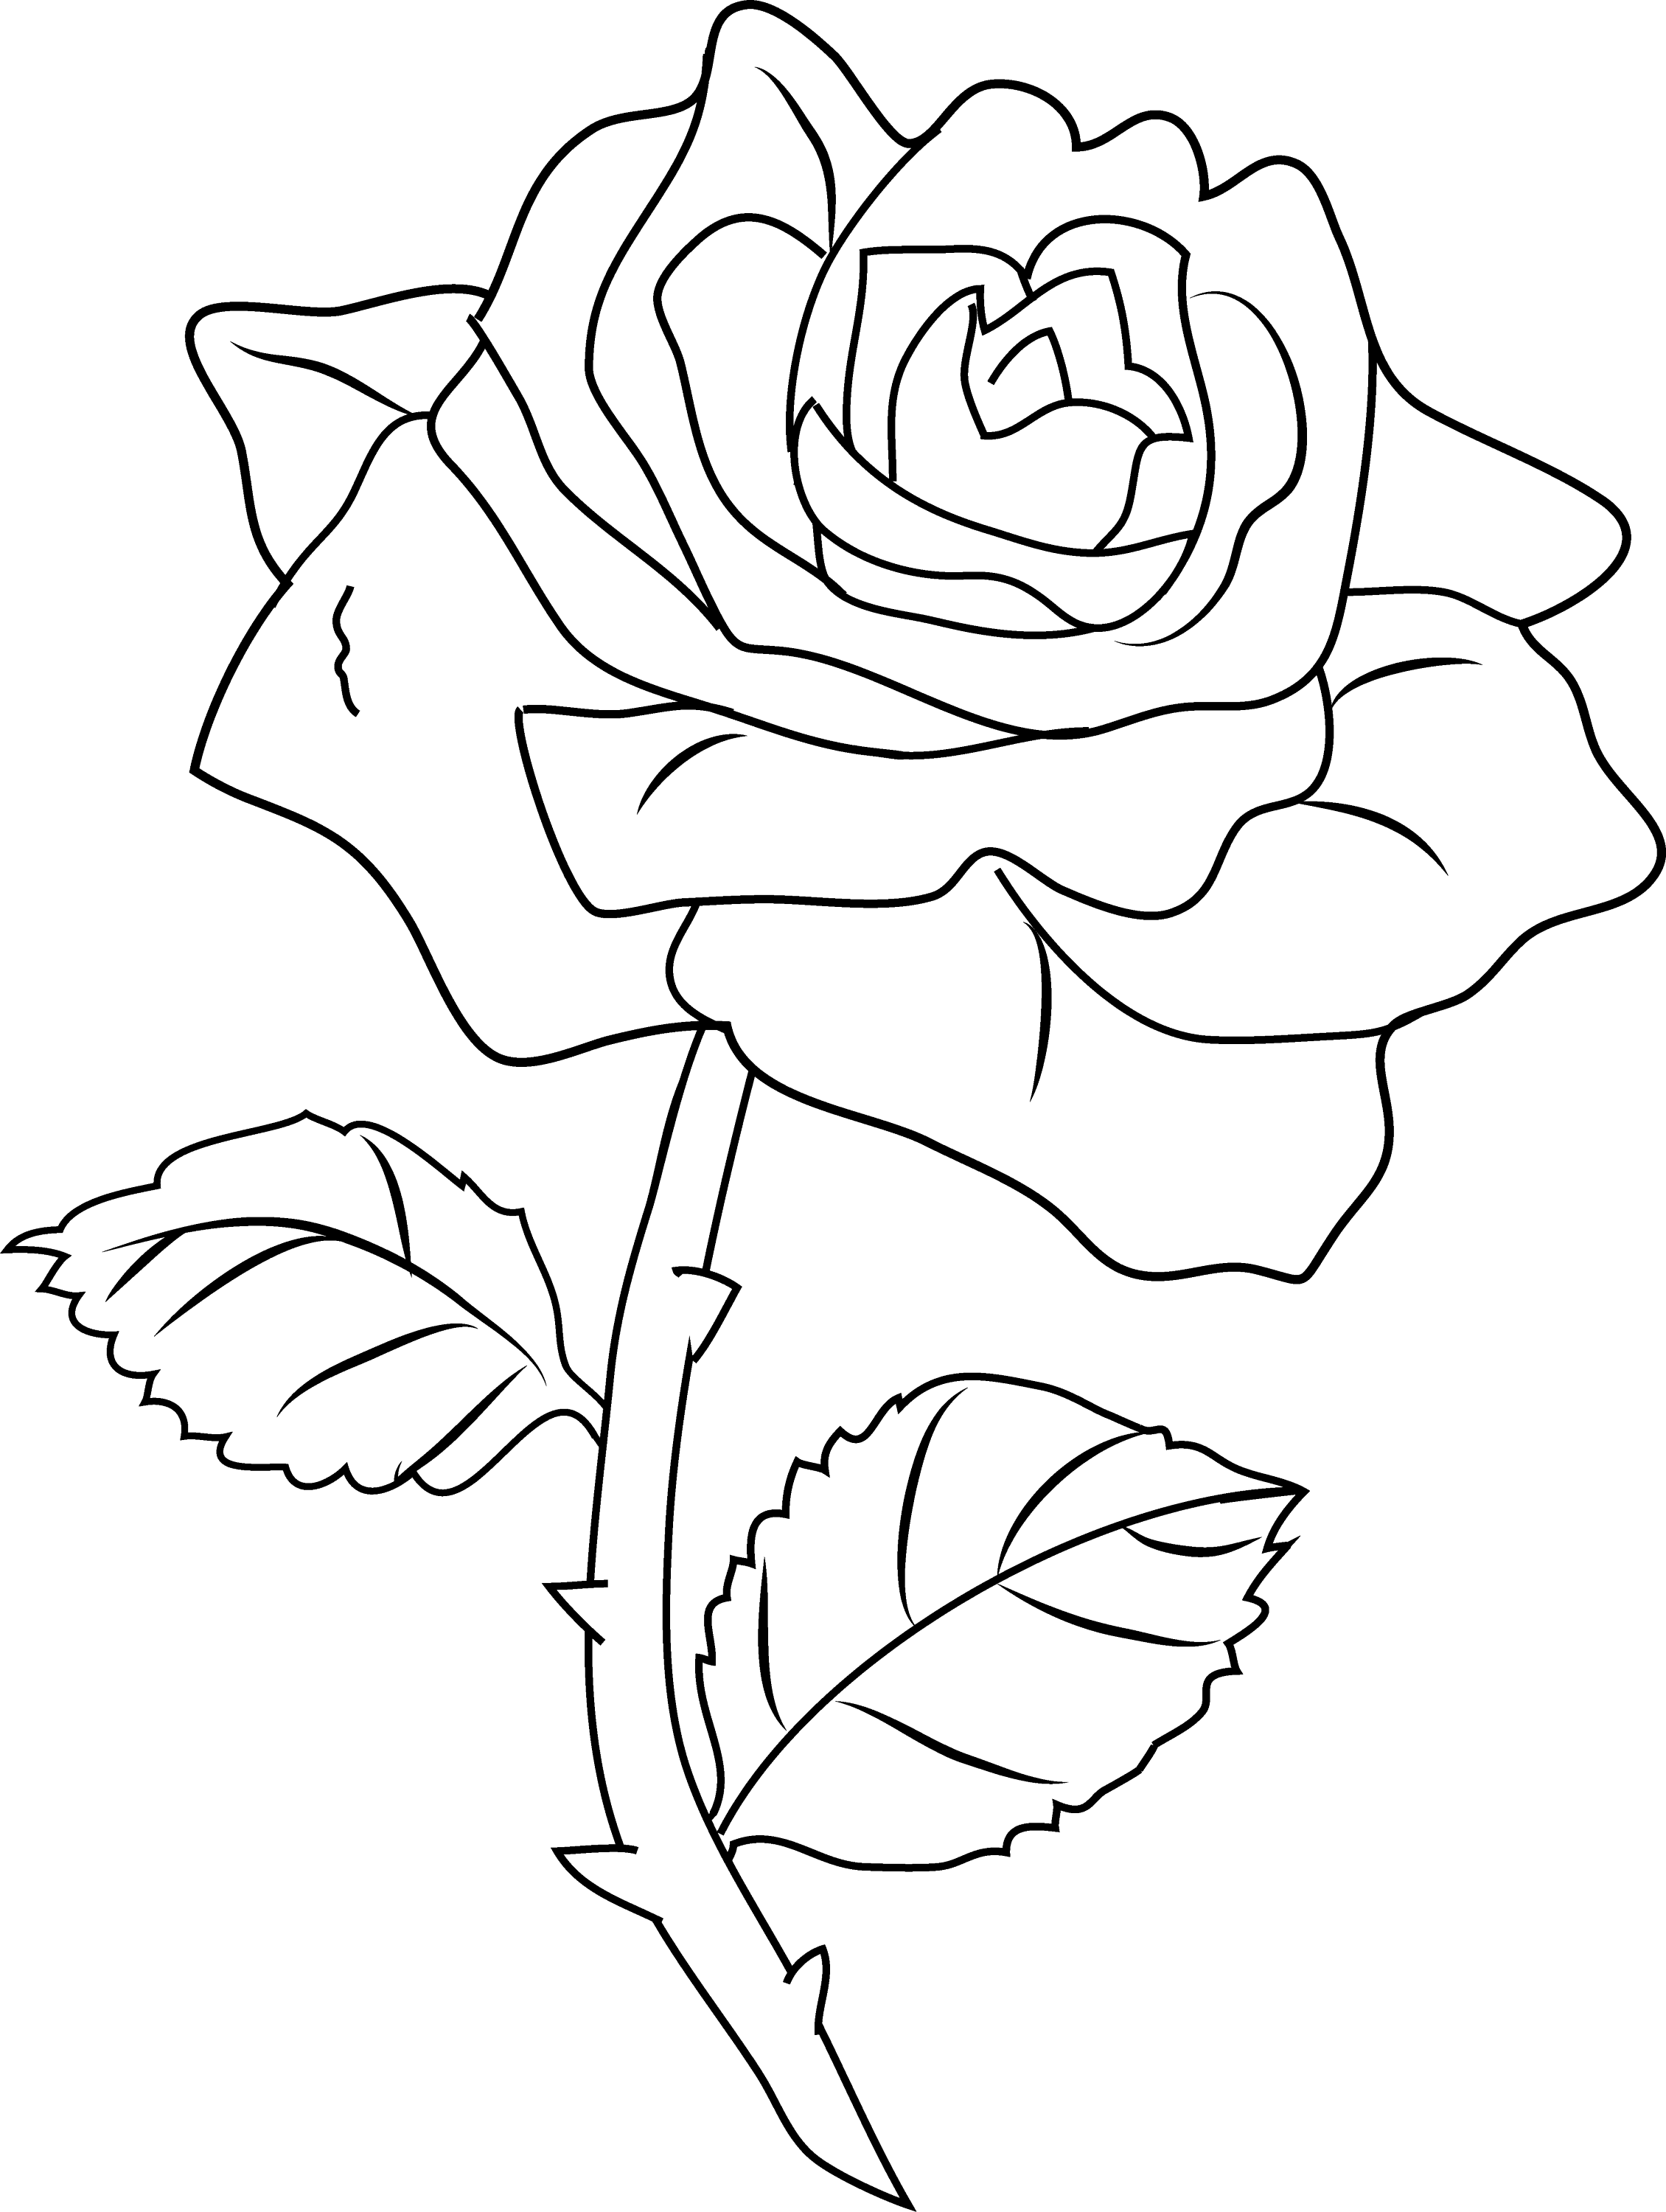 Cartoon Flower Line Drawing : Knumathise rose black and white outline images